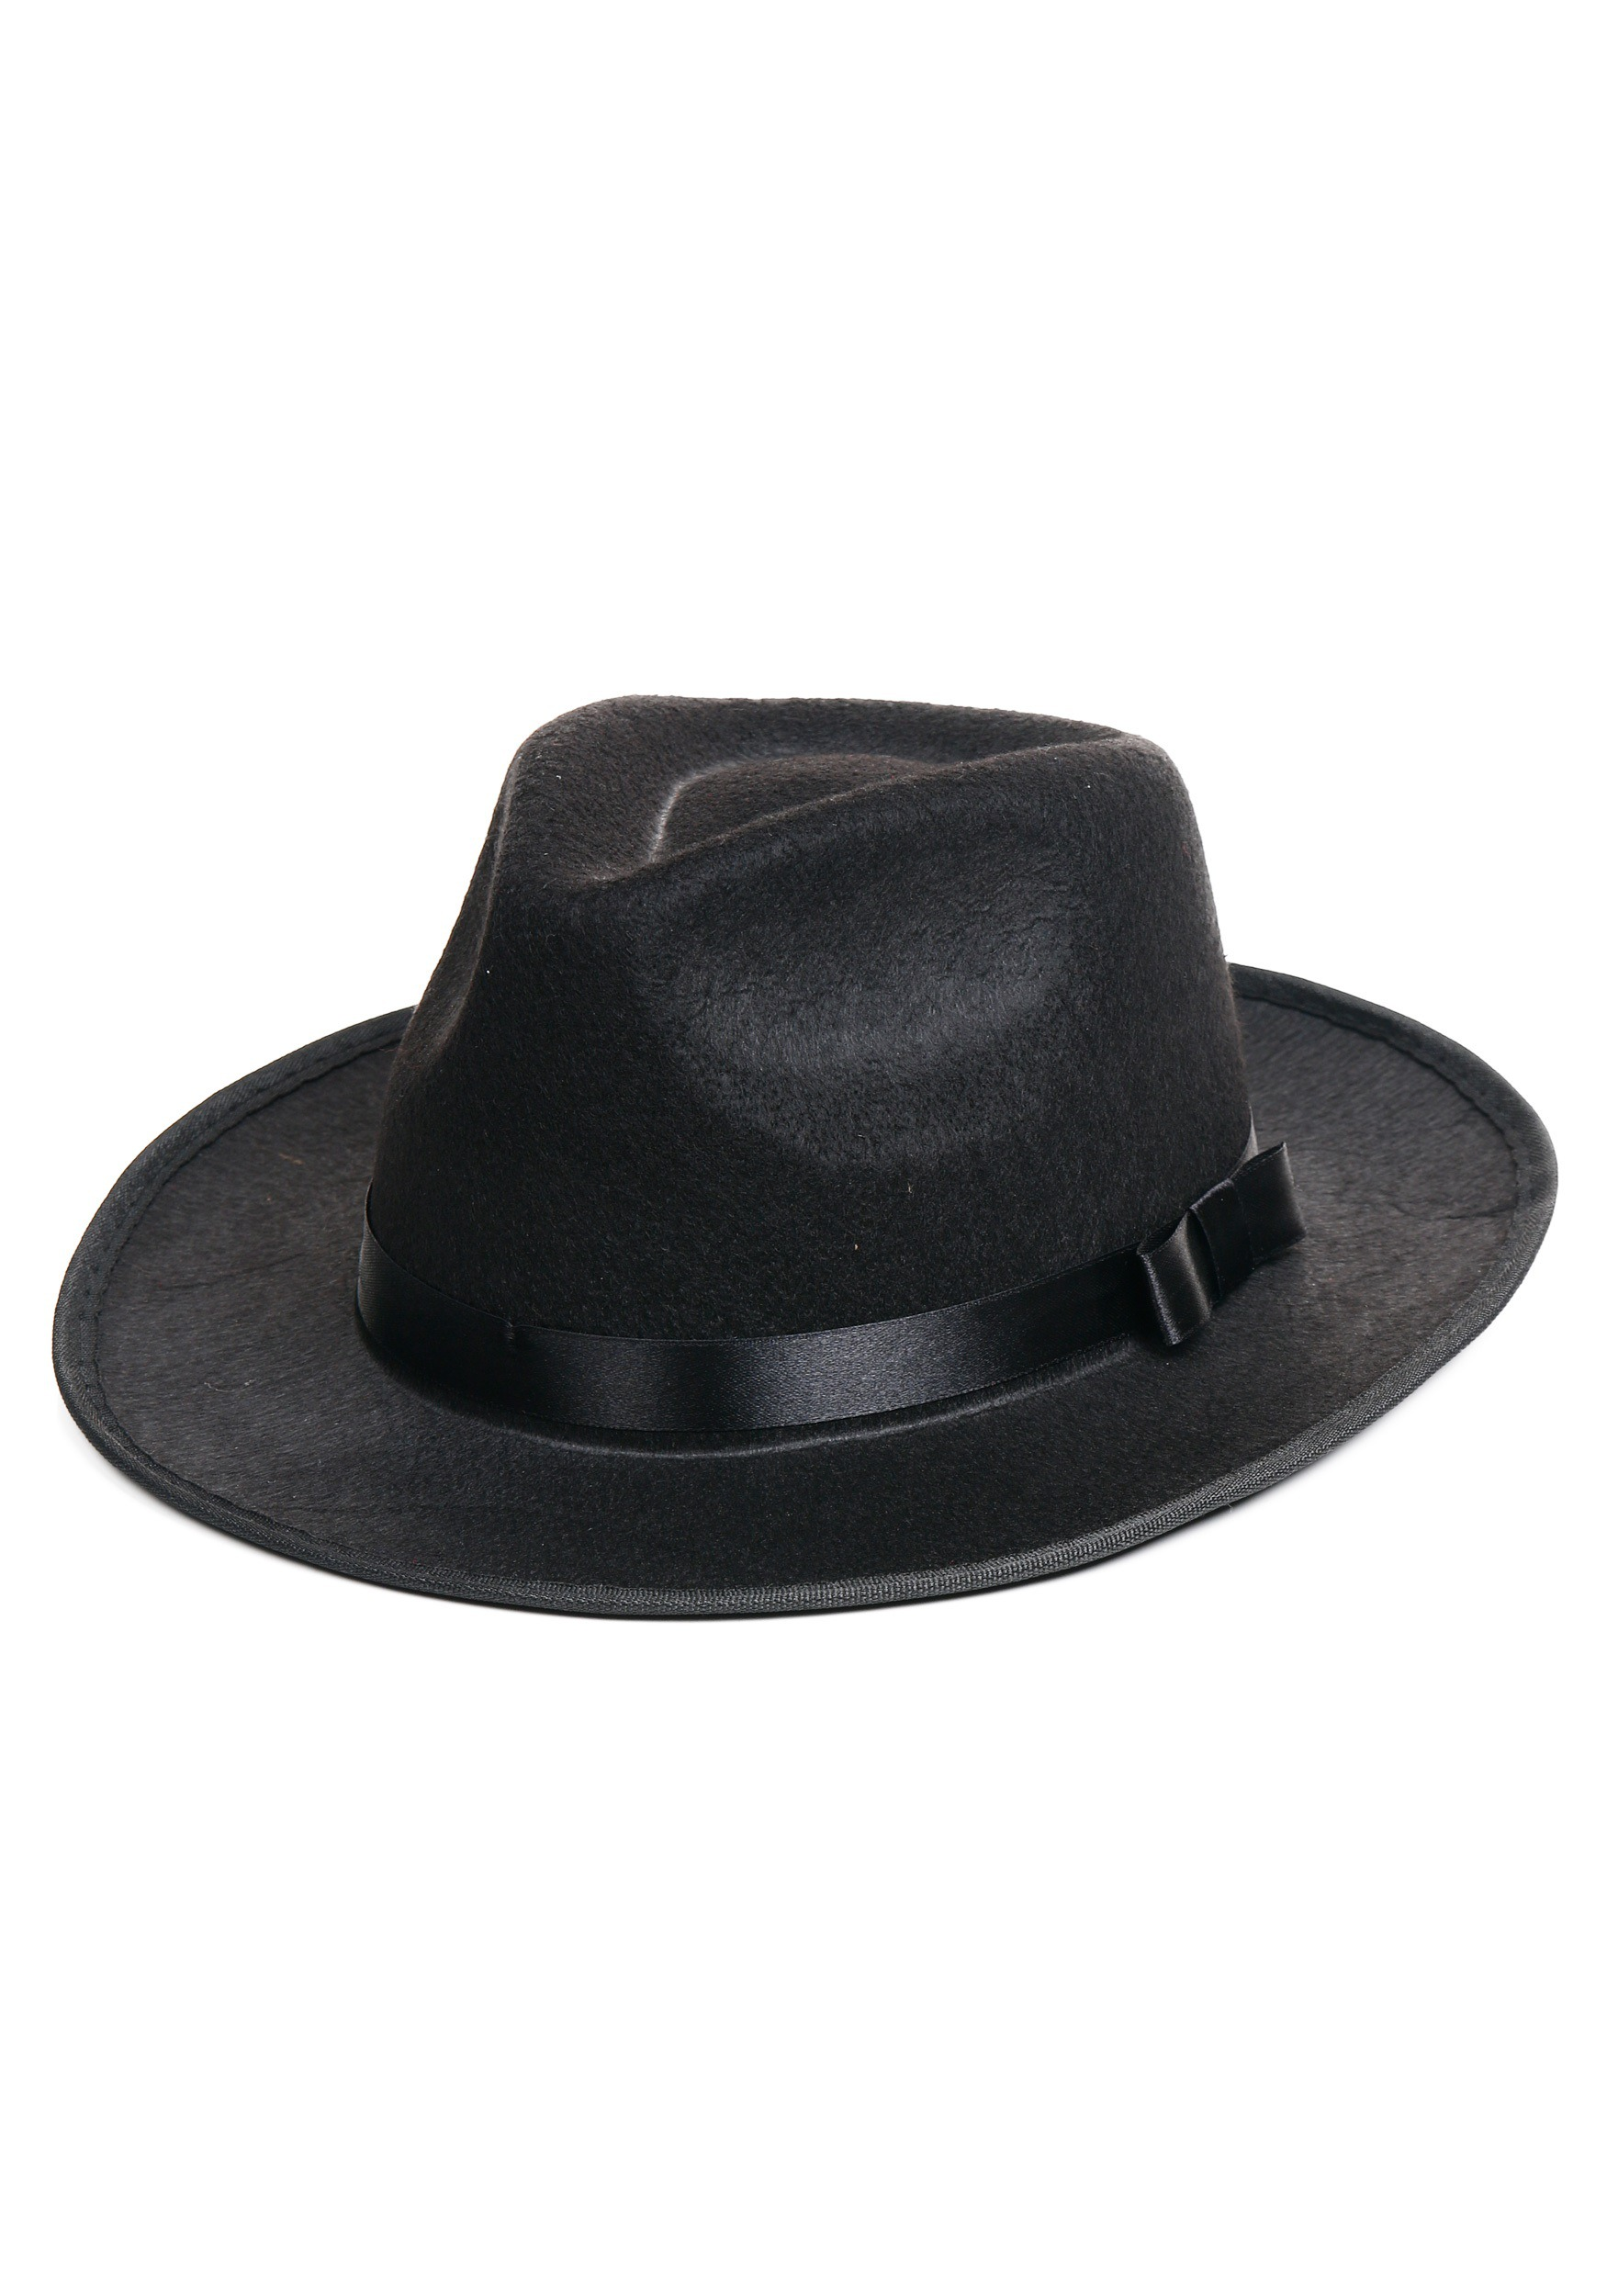 6f179e1935 Black Gangster Hat